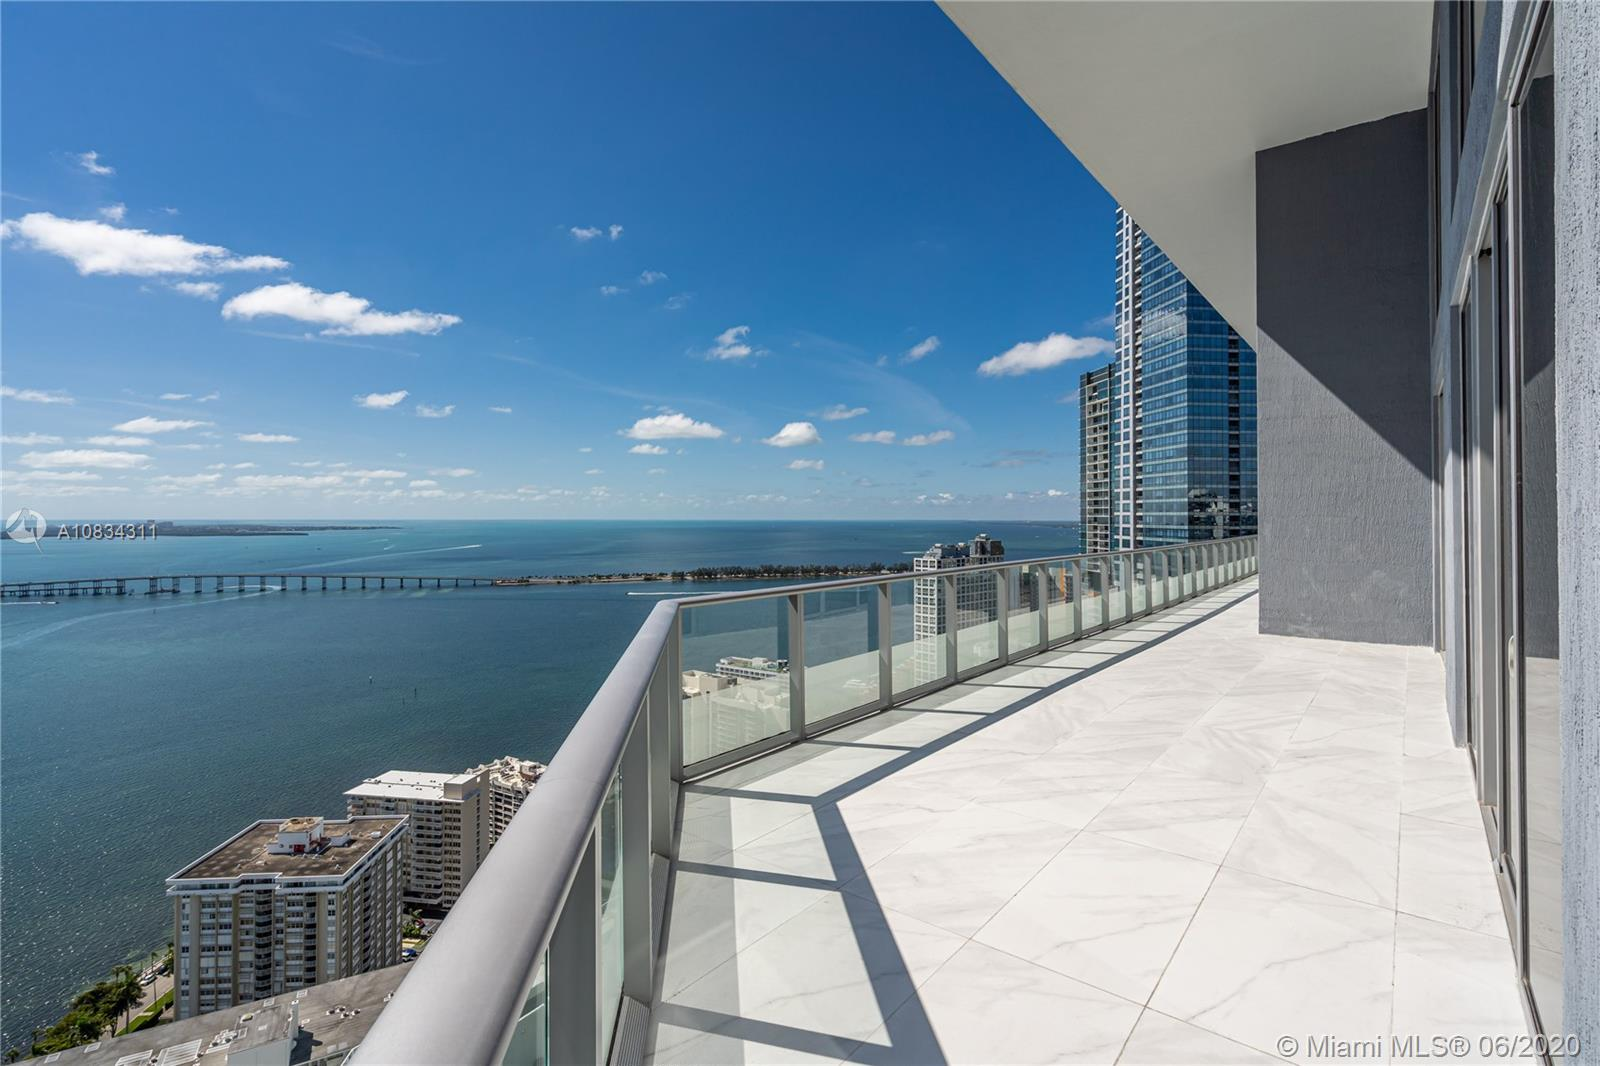 Breathtaking waterviews from this brand new 2 Story Penthouse.  20 feet high ceilings, italian designer open kitchen plus full size Butler's Kitchen. Lovely white 24 x 48 white italian white porcelain.   6 bedrooms 6.5 Bathrooms and includes Maid's Quarters with separate entrance, floor-to-ceiling glass impact resistant windows, movie theater room, family room, office-library, huge walk-in california closets, large balconies and impressive open spaces. 5 parking spaces. Luxury building with top of the line amenities. 24/7 security and concierge, pool, gym, spa, movie theater, social room and more. A must see. Easy to show! Best in Brickell!